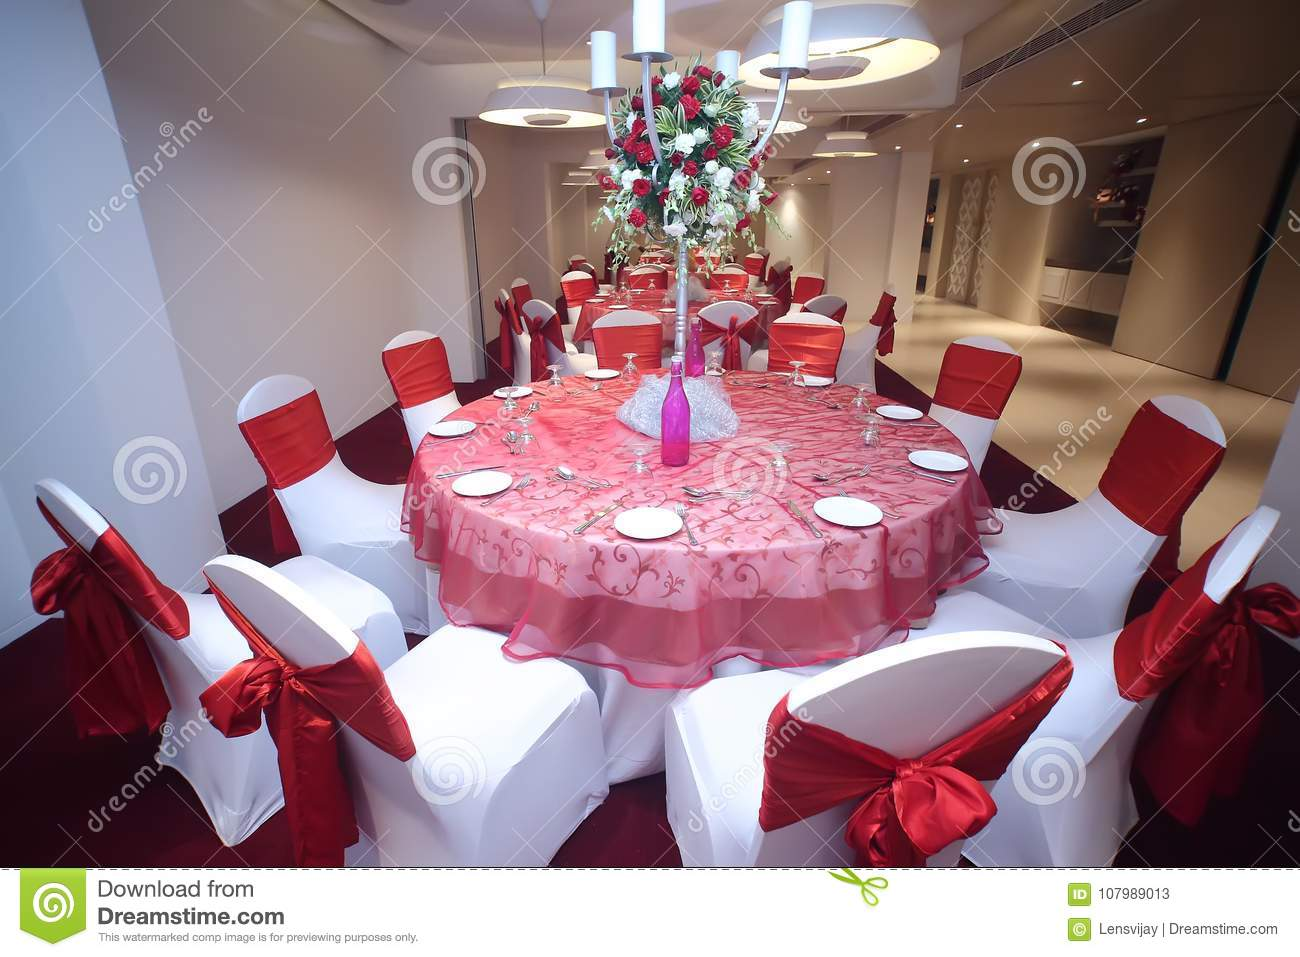 Round table set up party stock image. Image of plate - 107989013